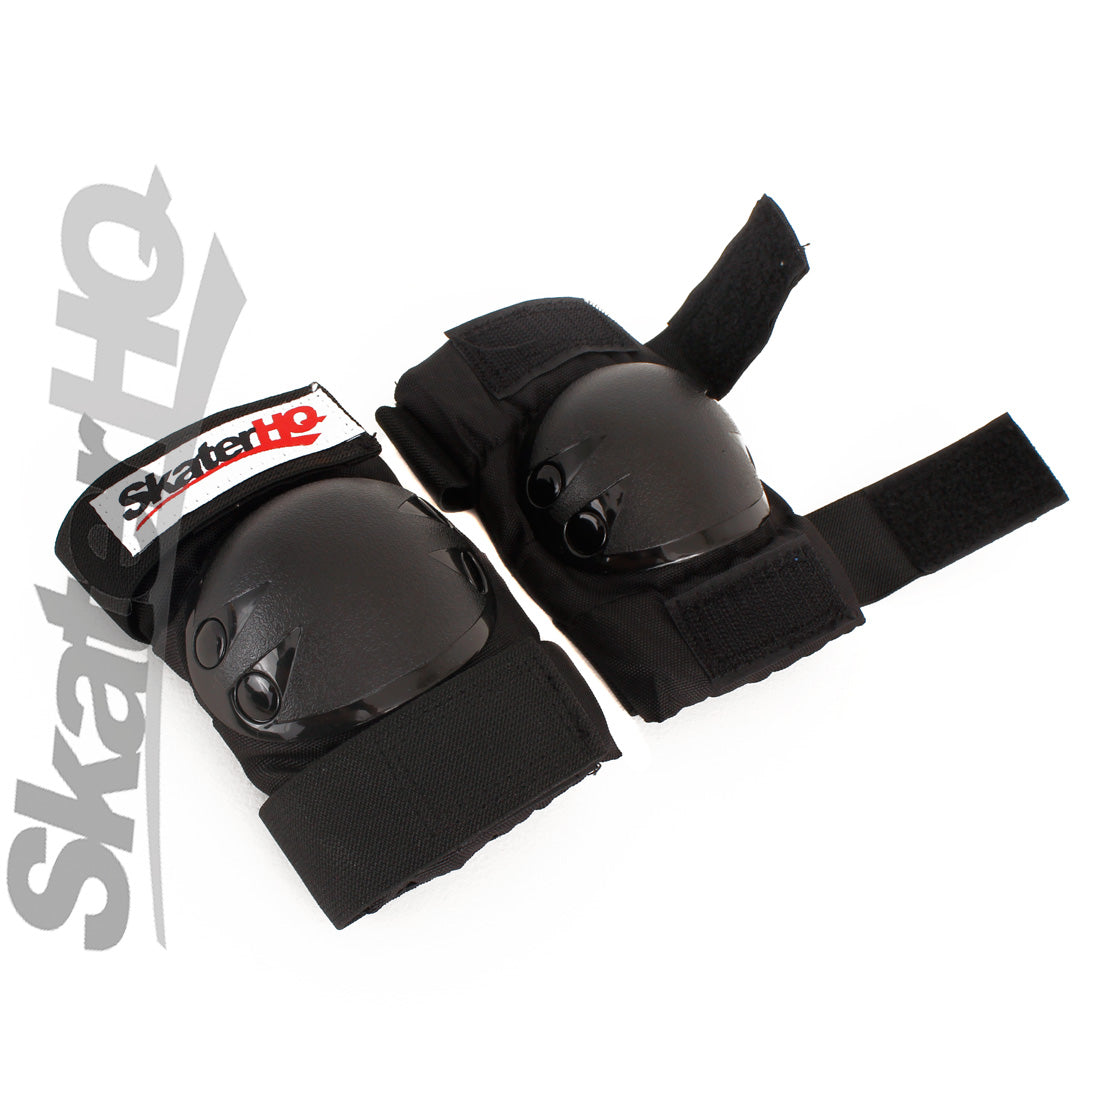 Skater HQ Elbow Pads - Junior